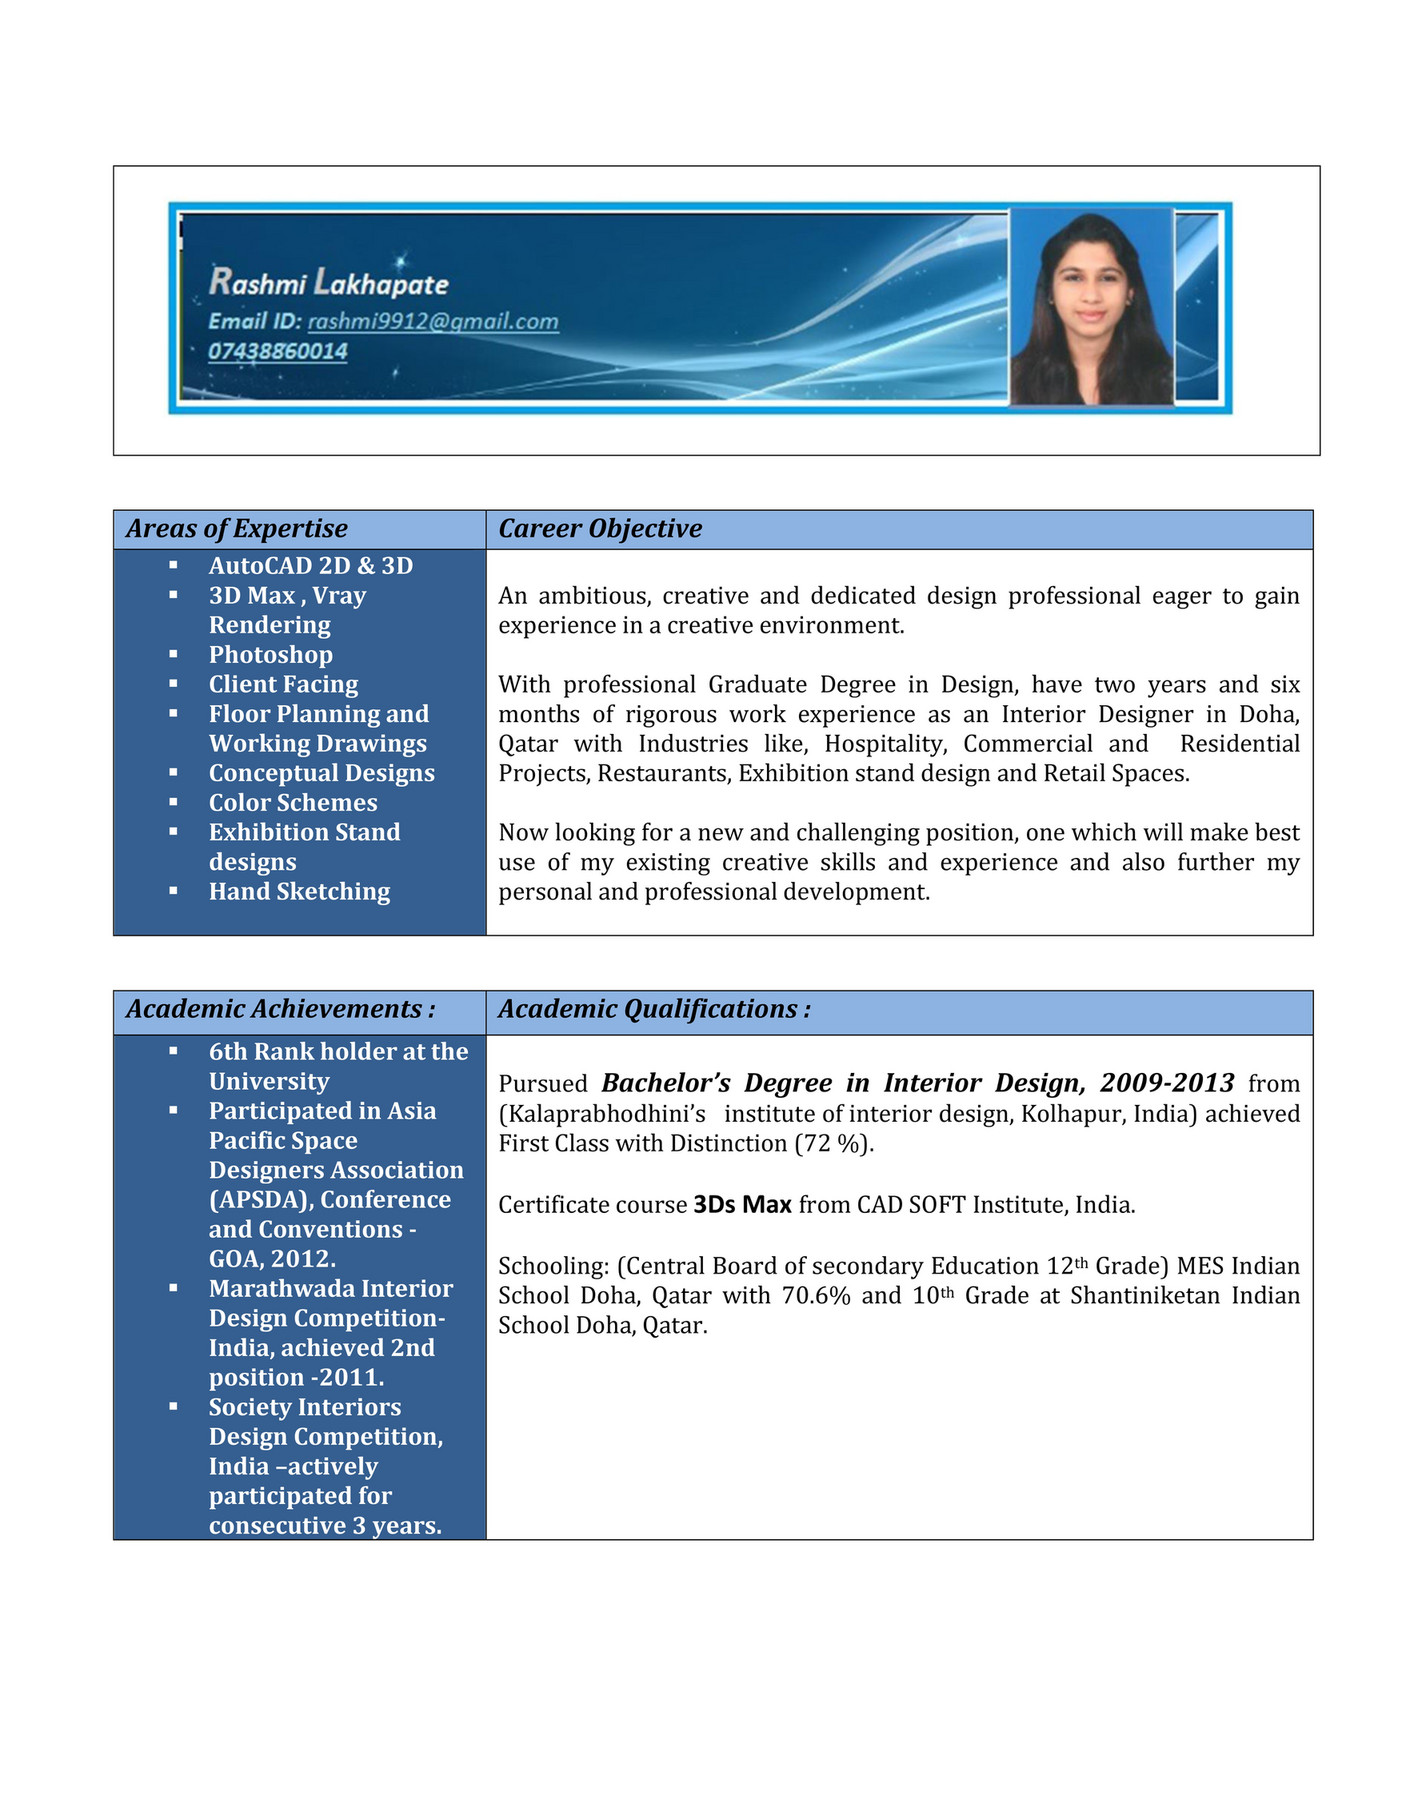 My Publications Rashmi Cv Page 2 Created With Publitas Com